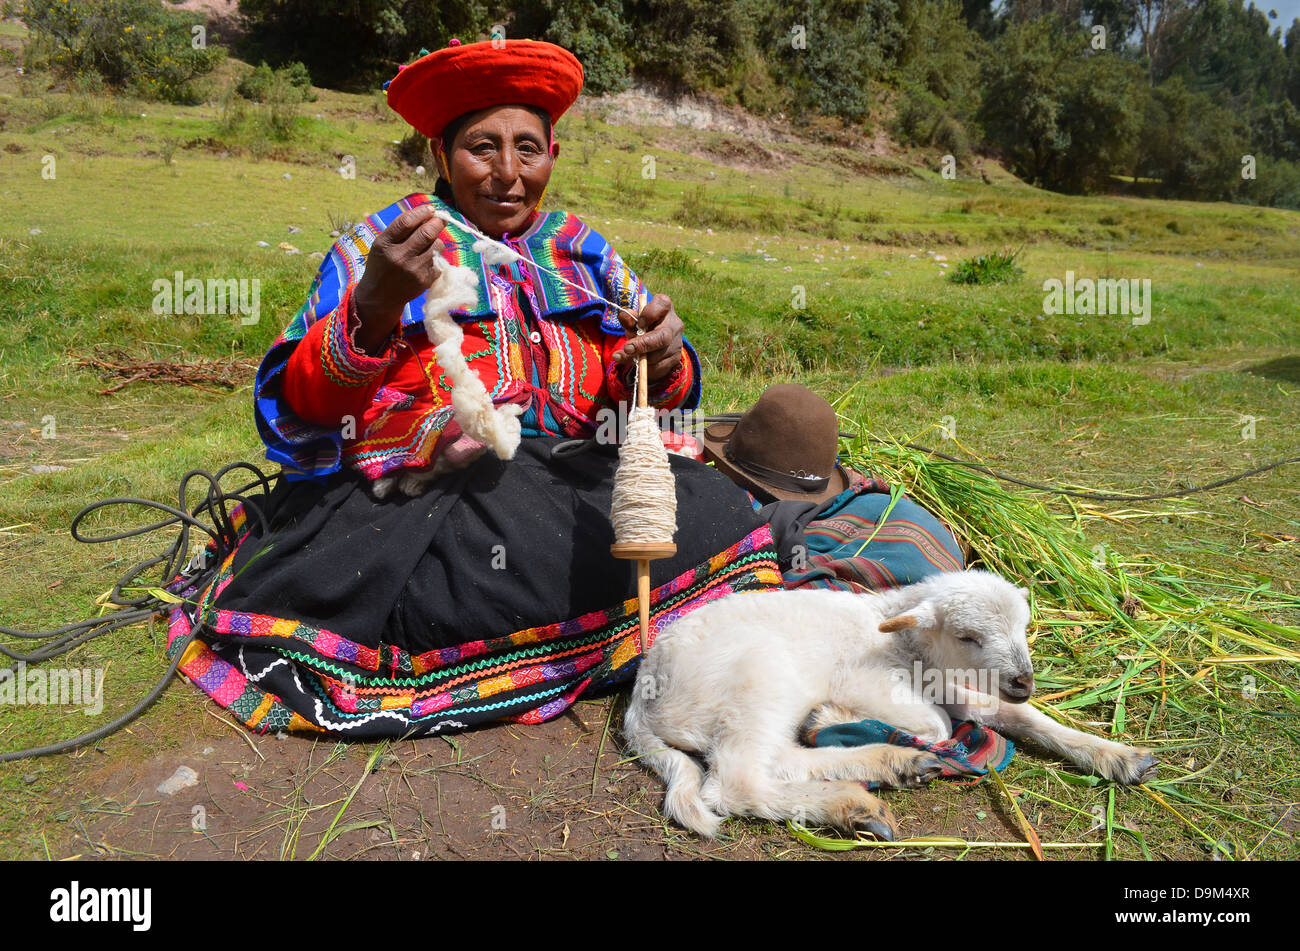 A Quechua local girl from the rural Andes in traditional dress, Cusco, Peru - Stock Image